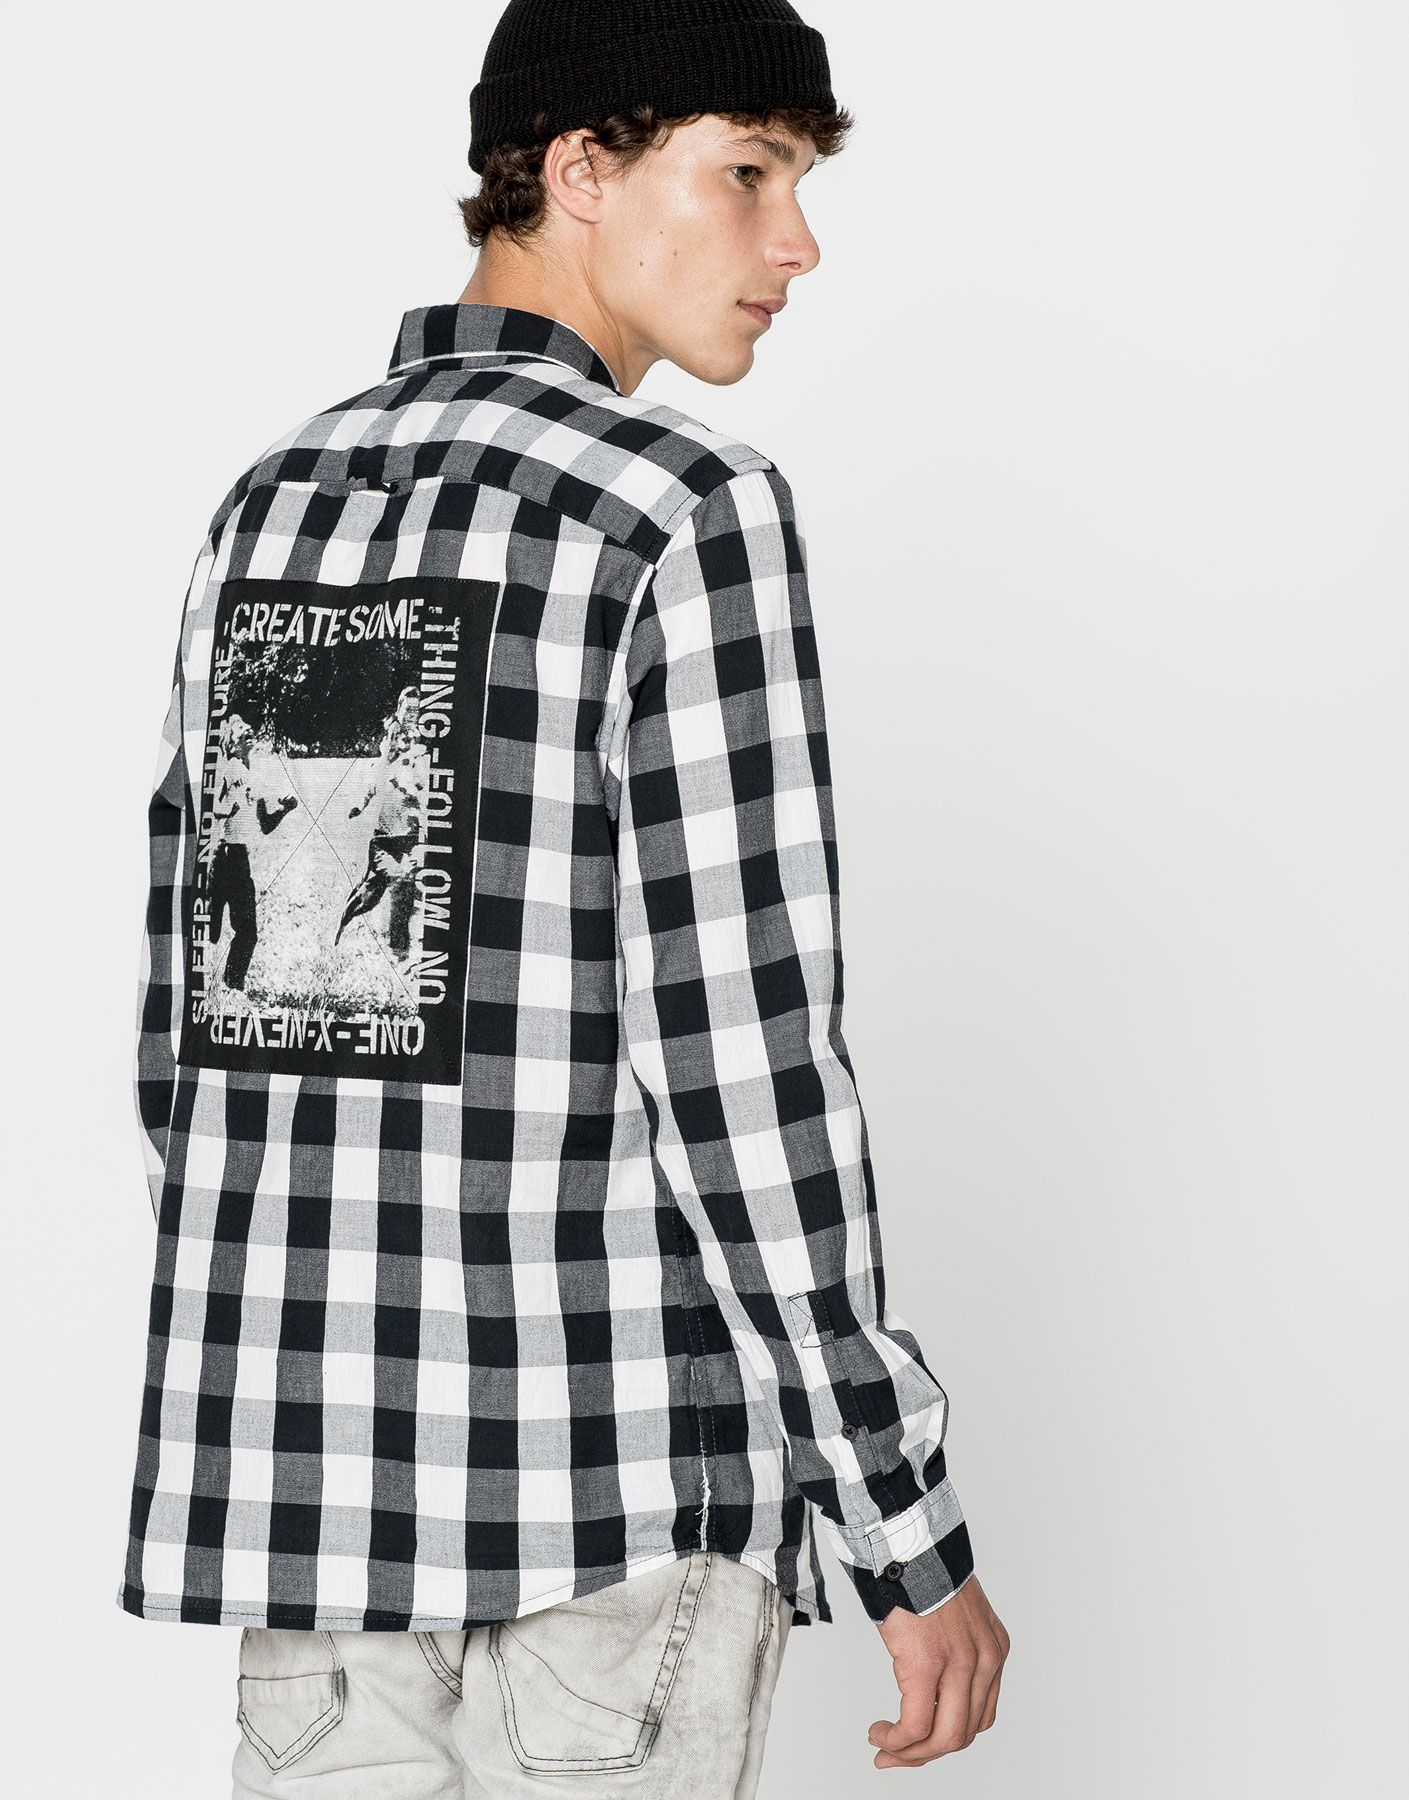 Checkered shirt with patch on back